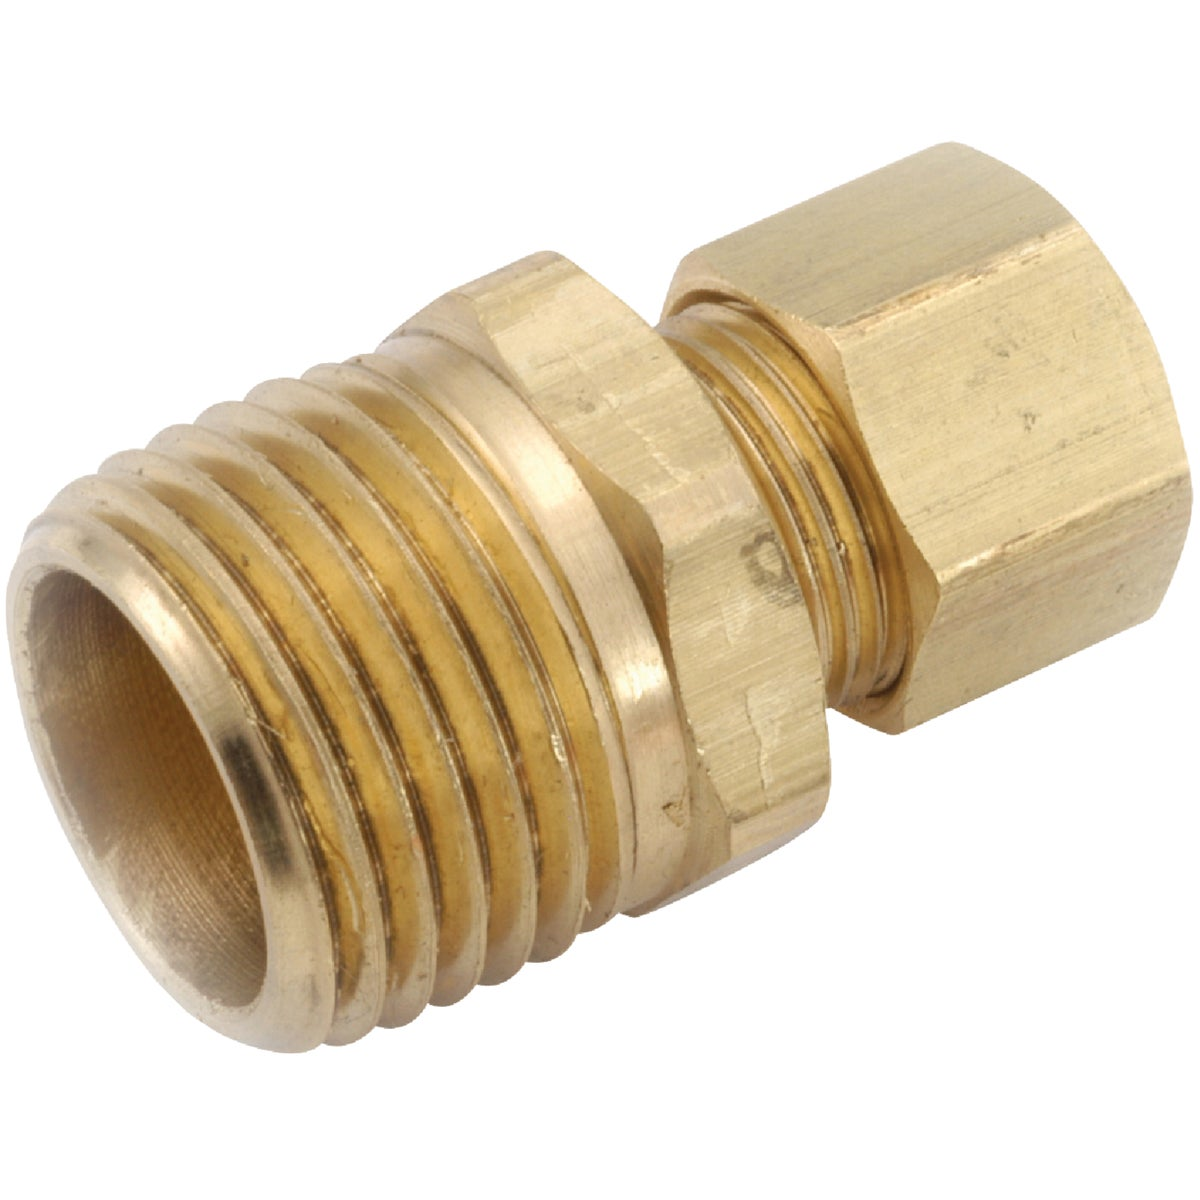 3/8X1/4 MALE CONNECTOR - 750068-0604 by Anderson Metals Corp